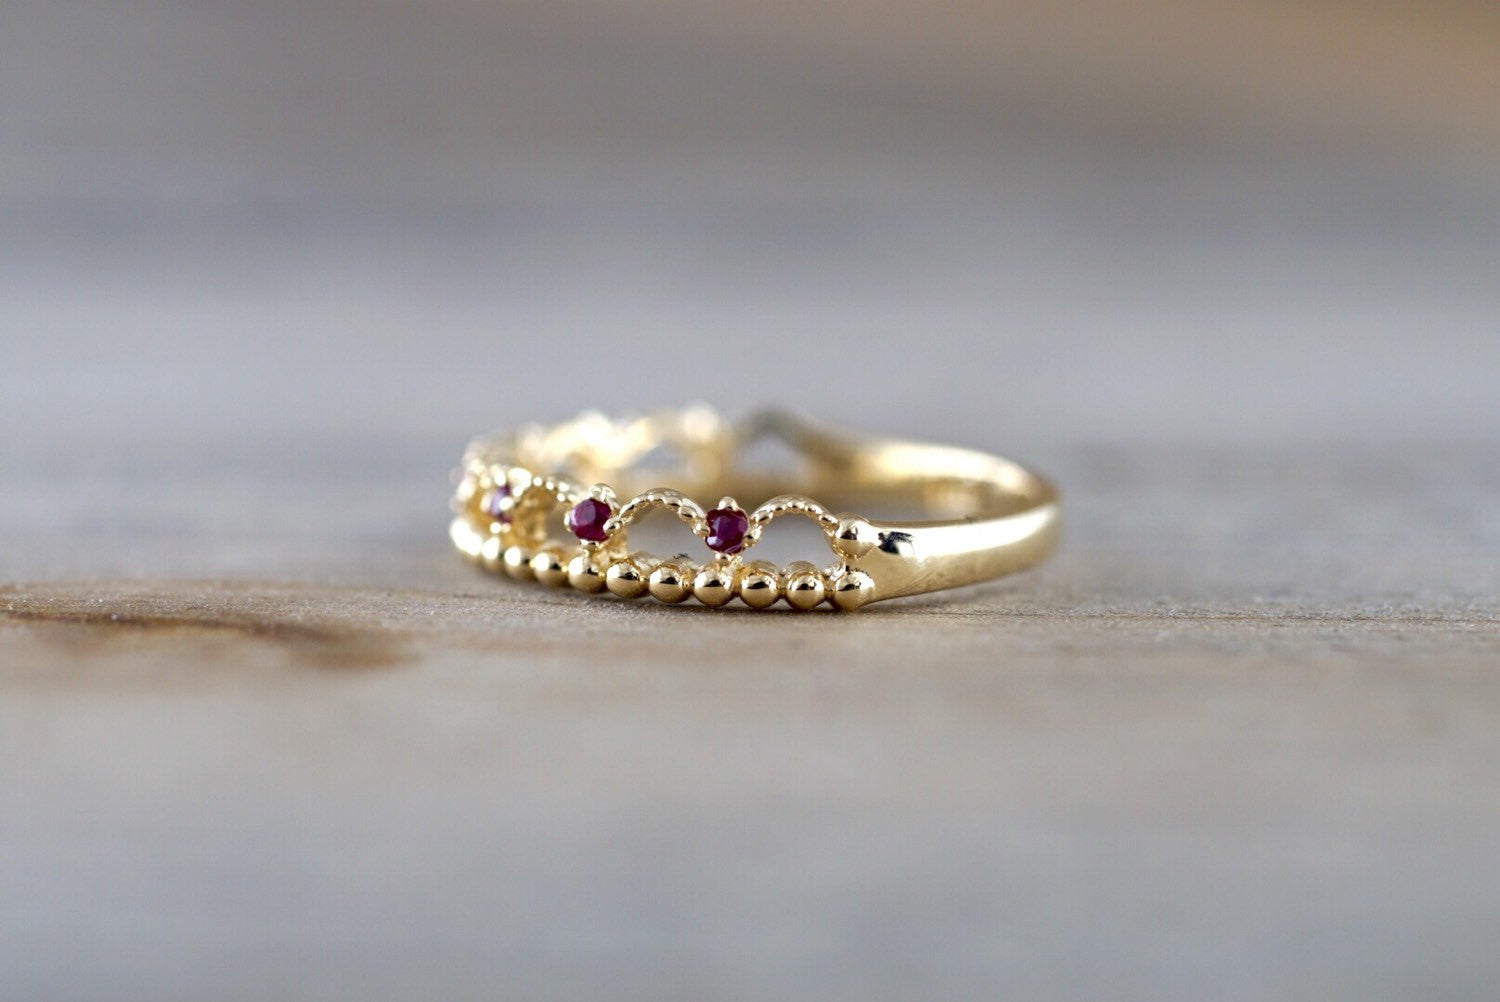 14kt Yellow Gold Red Ruby Ring Wide Vintage Antique Art Deco Crown Tiarra Crown Style Design